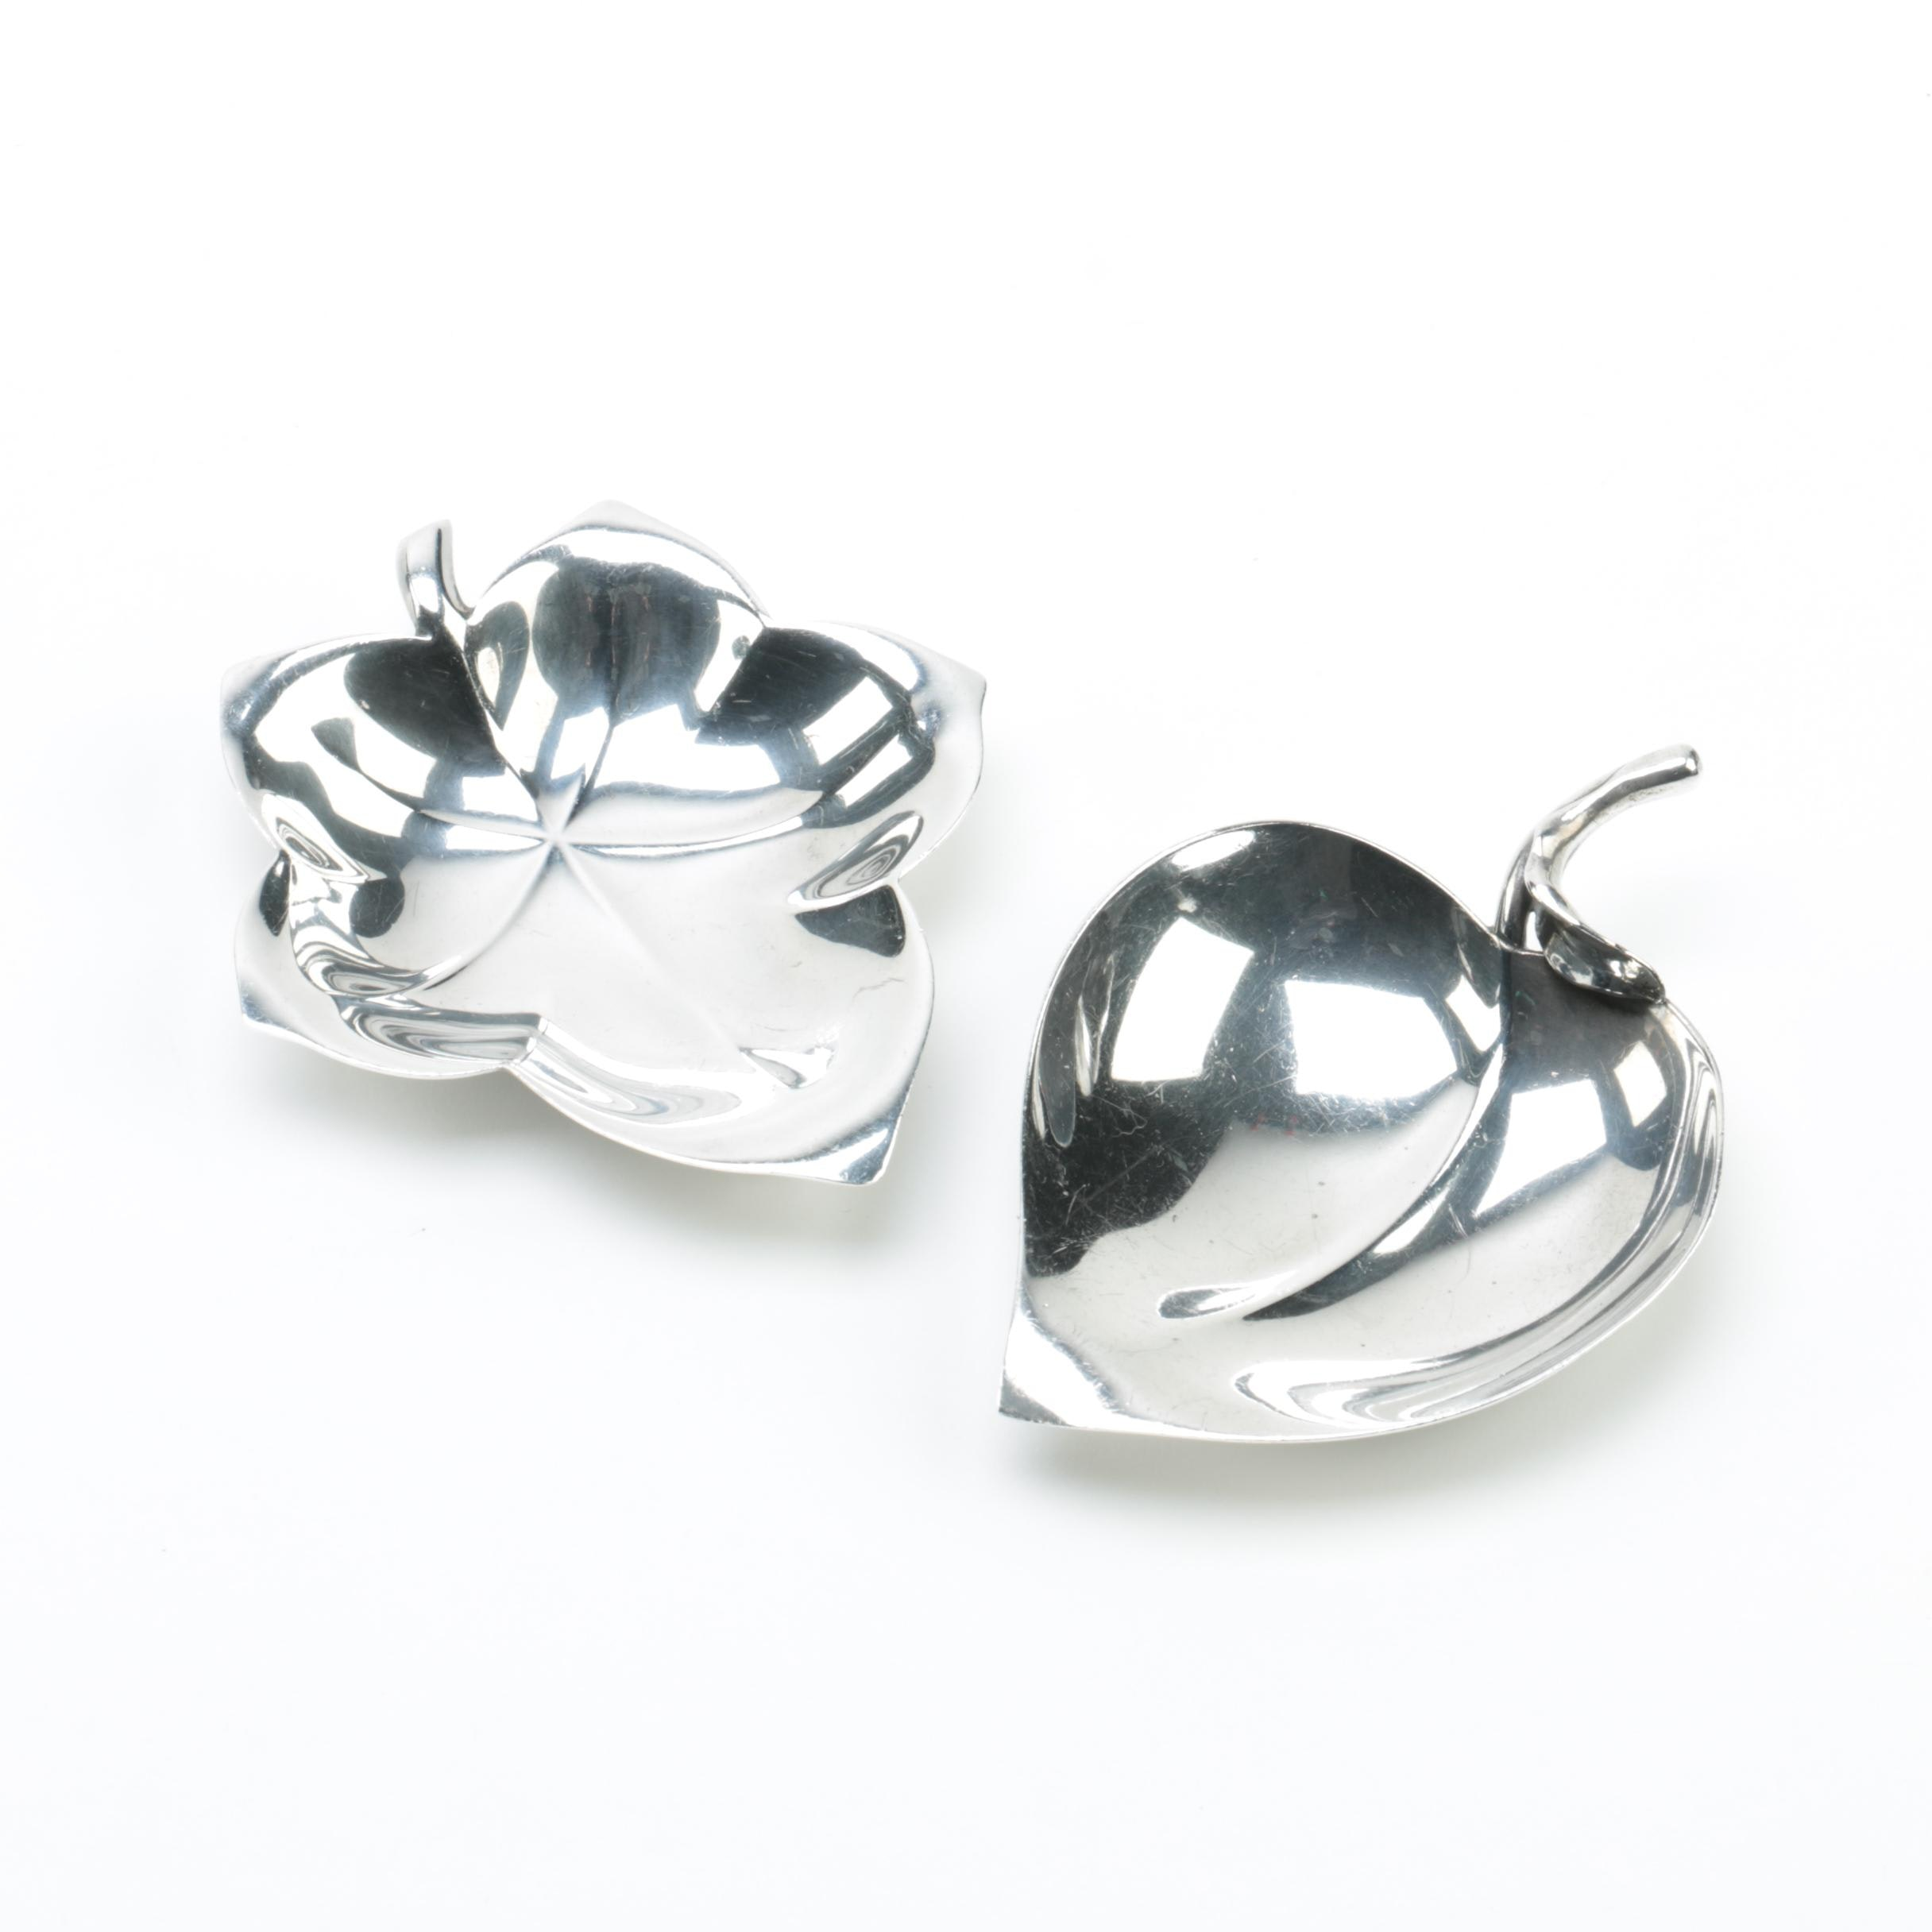 Tiffany & Co. Sterling Silver Leaf Shaped Nut Dishes